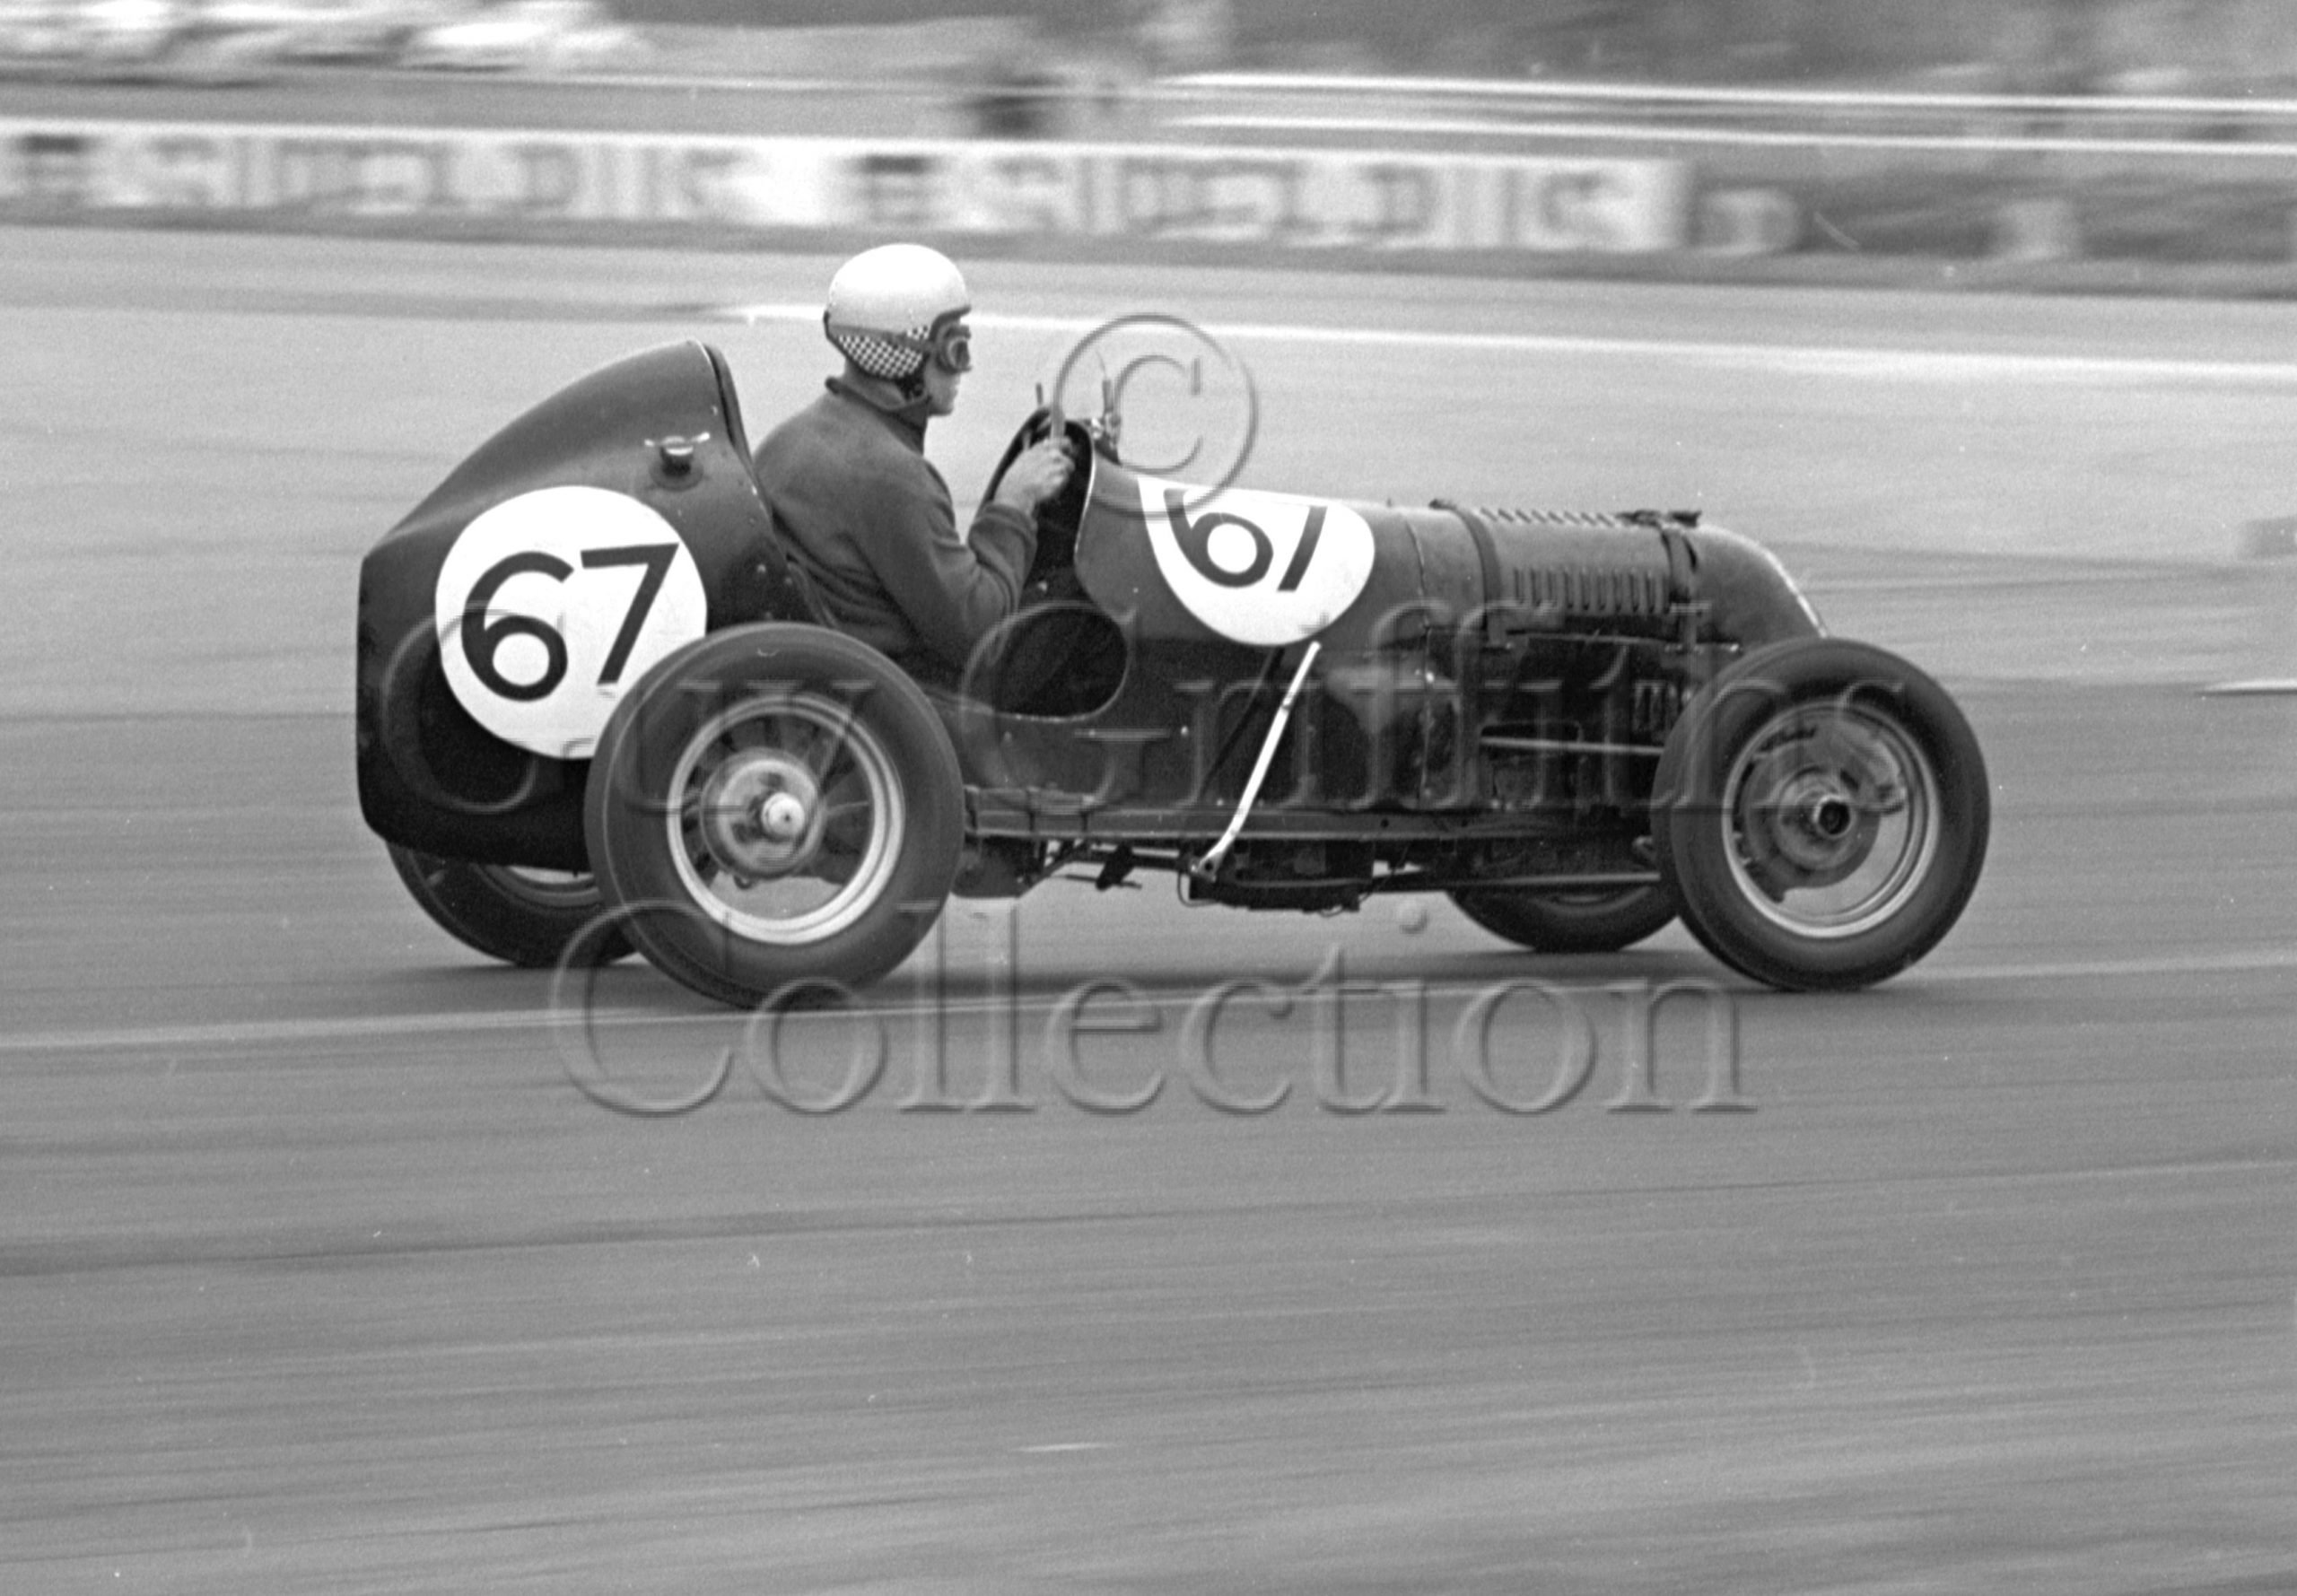 81-276–K-R-Duly–Austin–Silverstone–18-04-1964.jpg - Guy Griffiths Collection